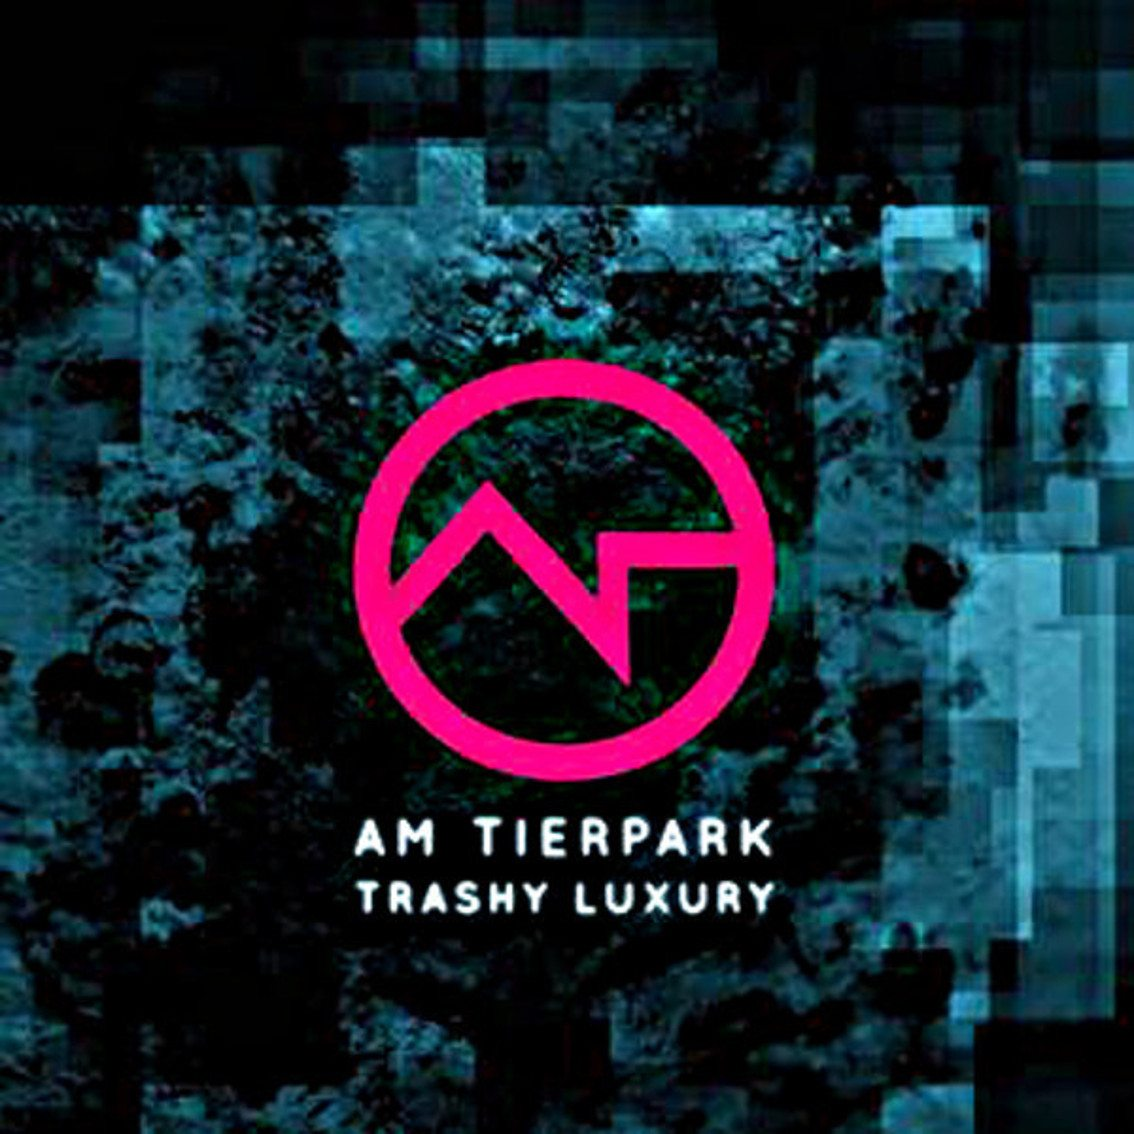 Danish Electro pop duo Am Tierpark issues 2CD limited edtion of new album'Trashy Luxury' in November - pre-orders accepted now